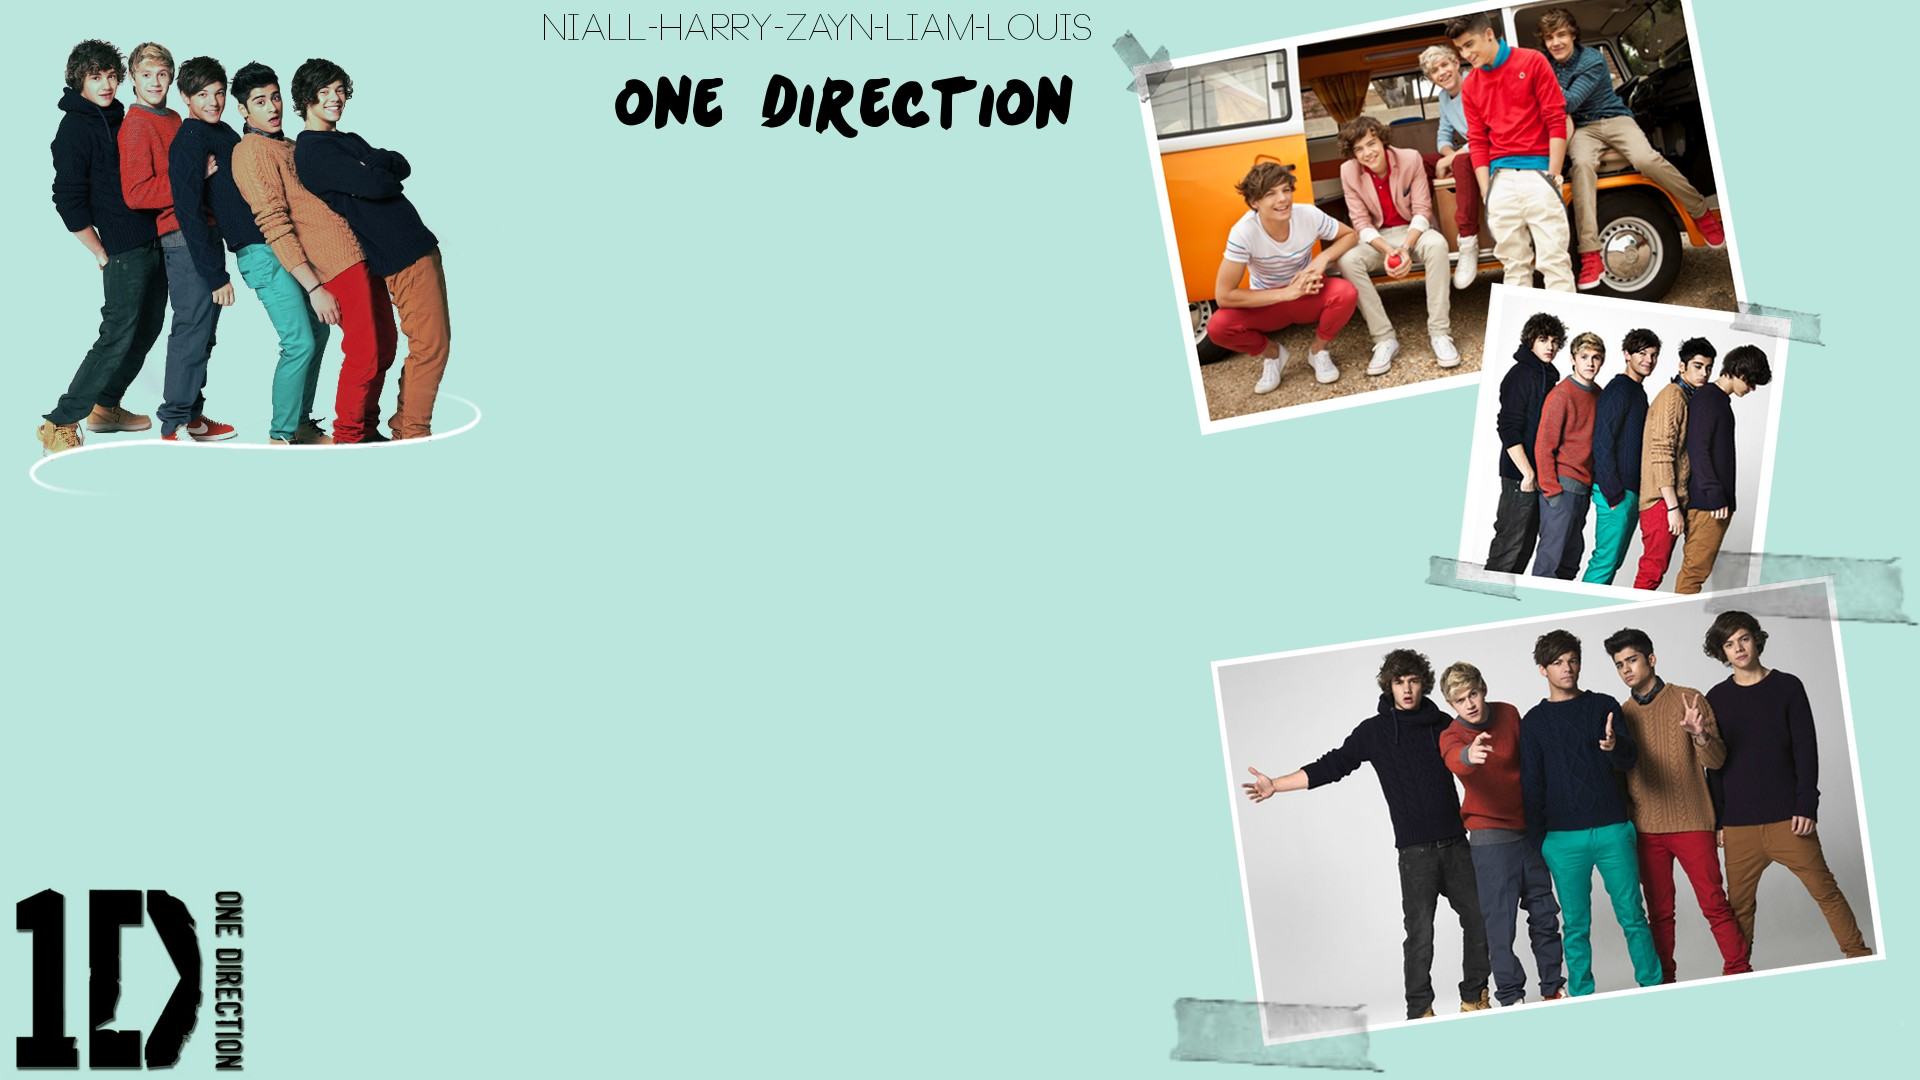 One Direction Background Images HD Wallpaper Download One Direction 1920x1080